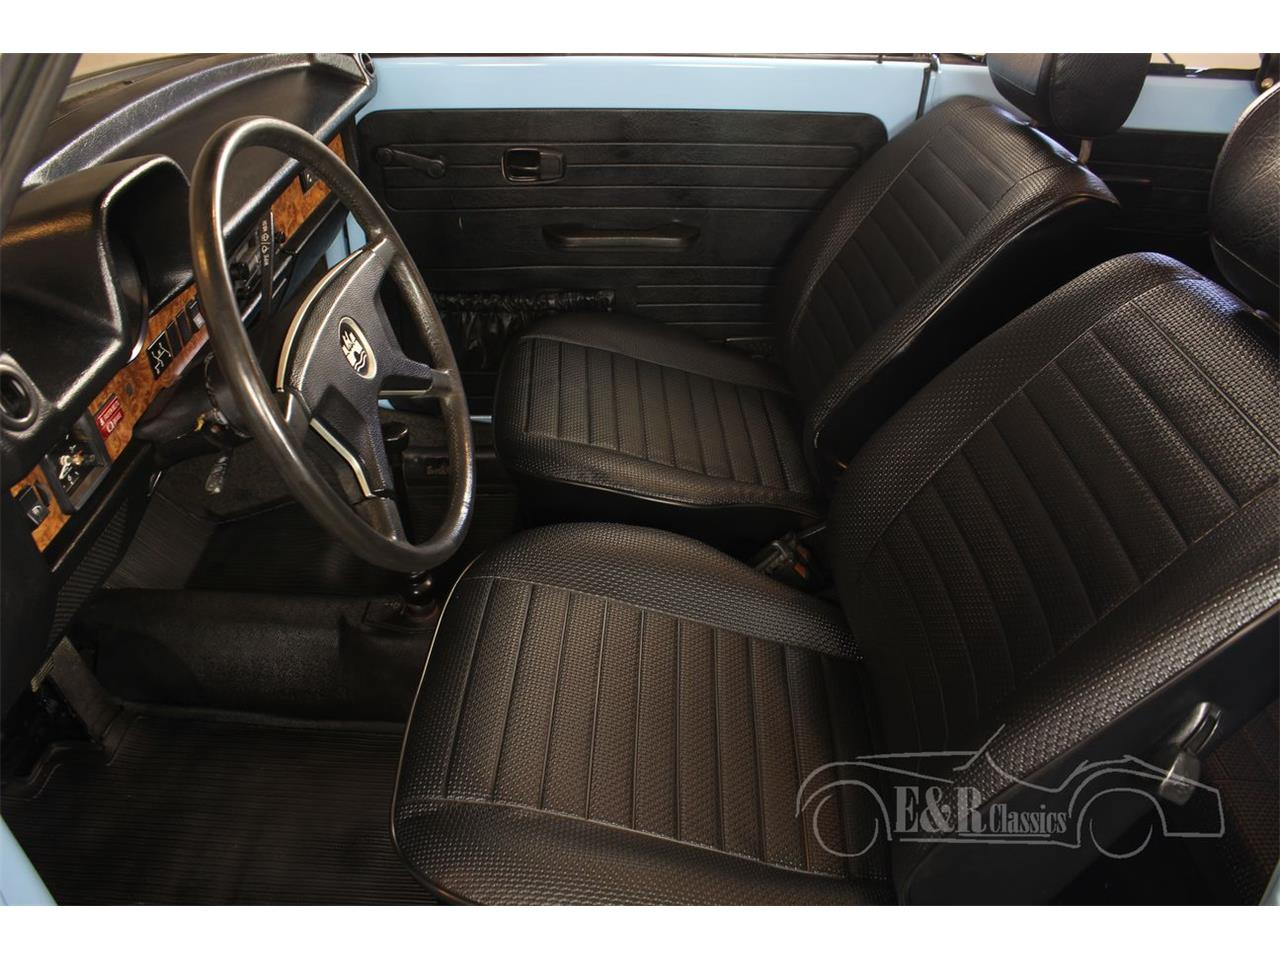 Large Picture of 1979 Volkswagen Beetle - $27,200.00 - N8EB